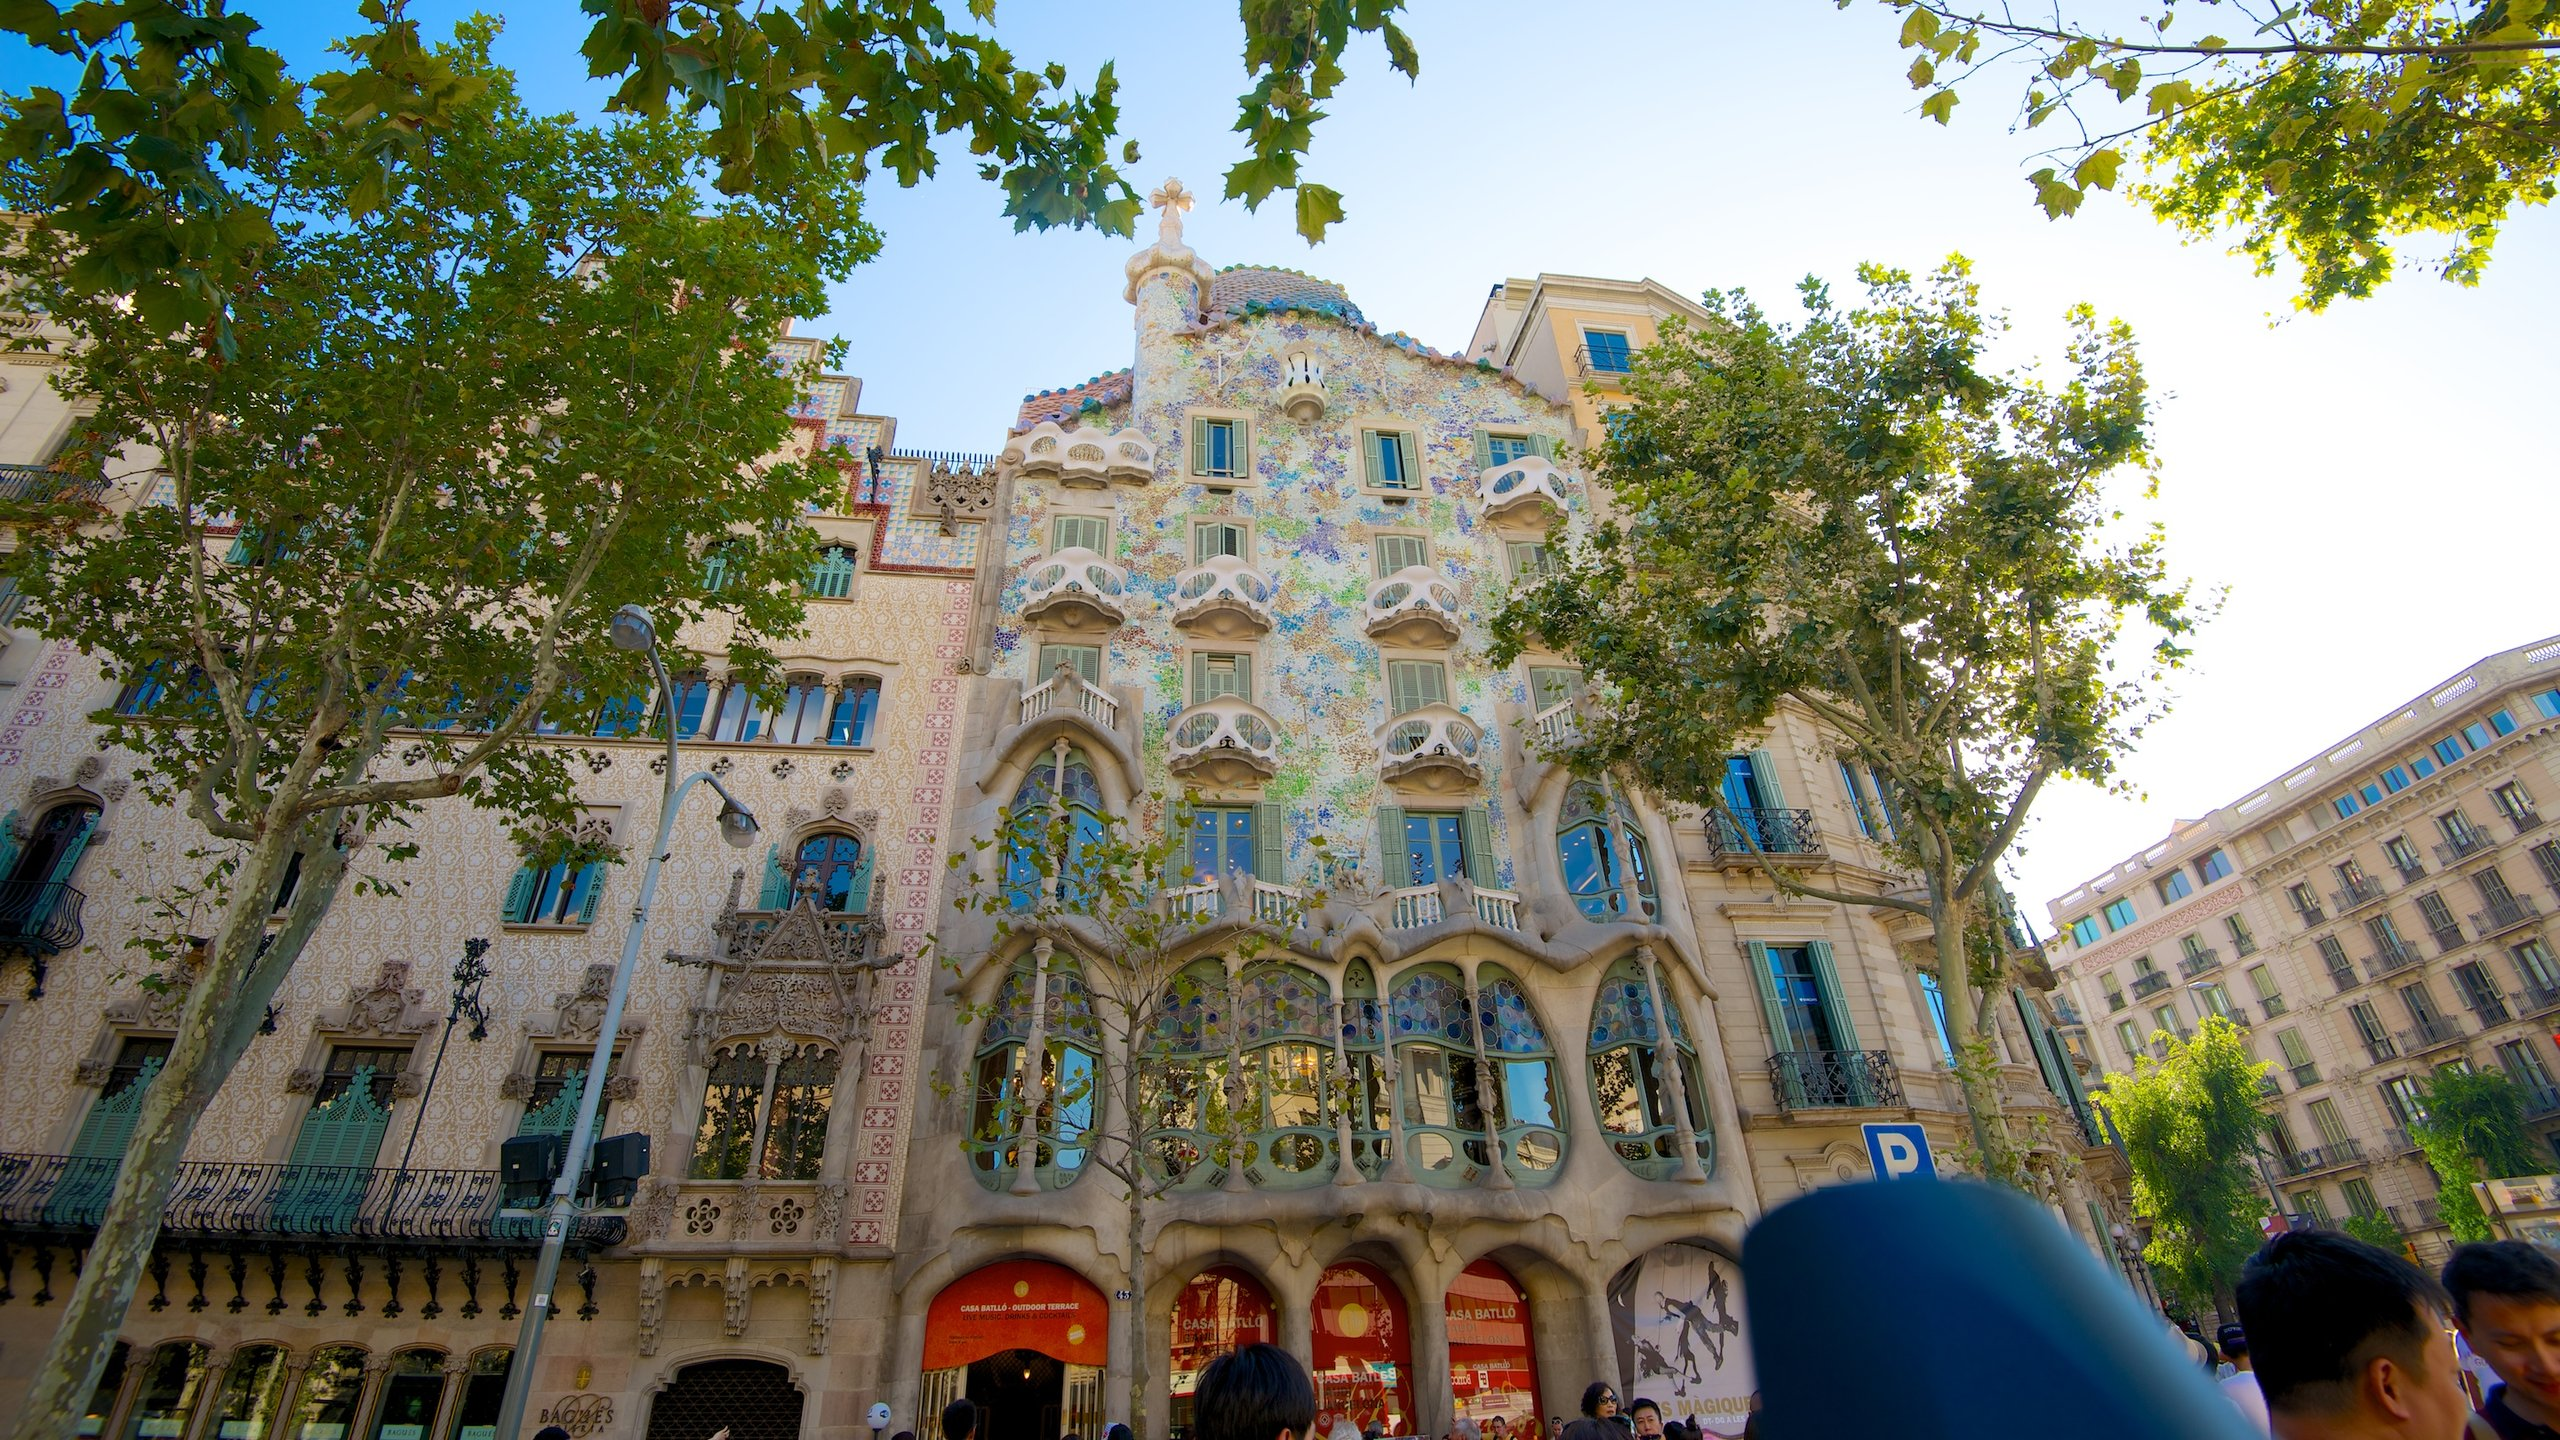 The Best Hotels Closest To Casa Batllo In Barcelona For 2021 Free Cancellation On Select Hotels Expedia